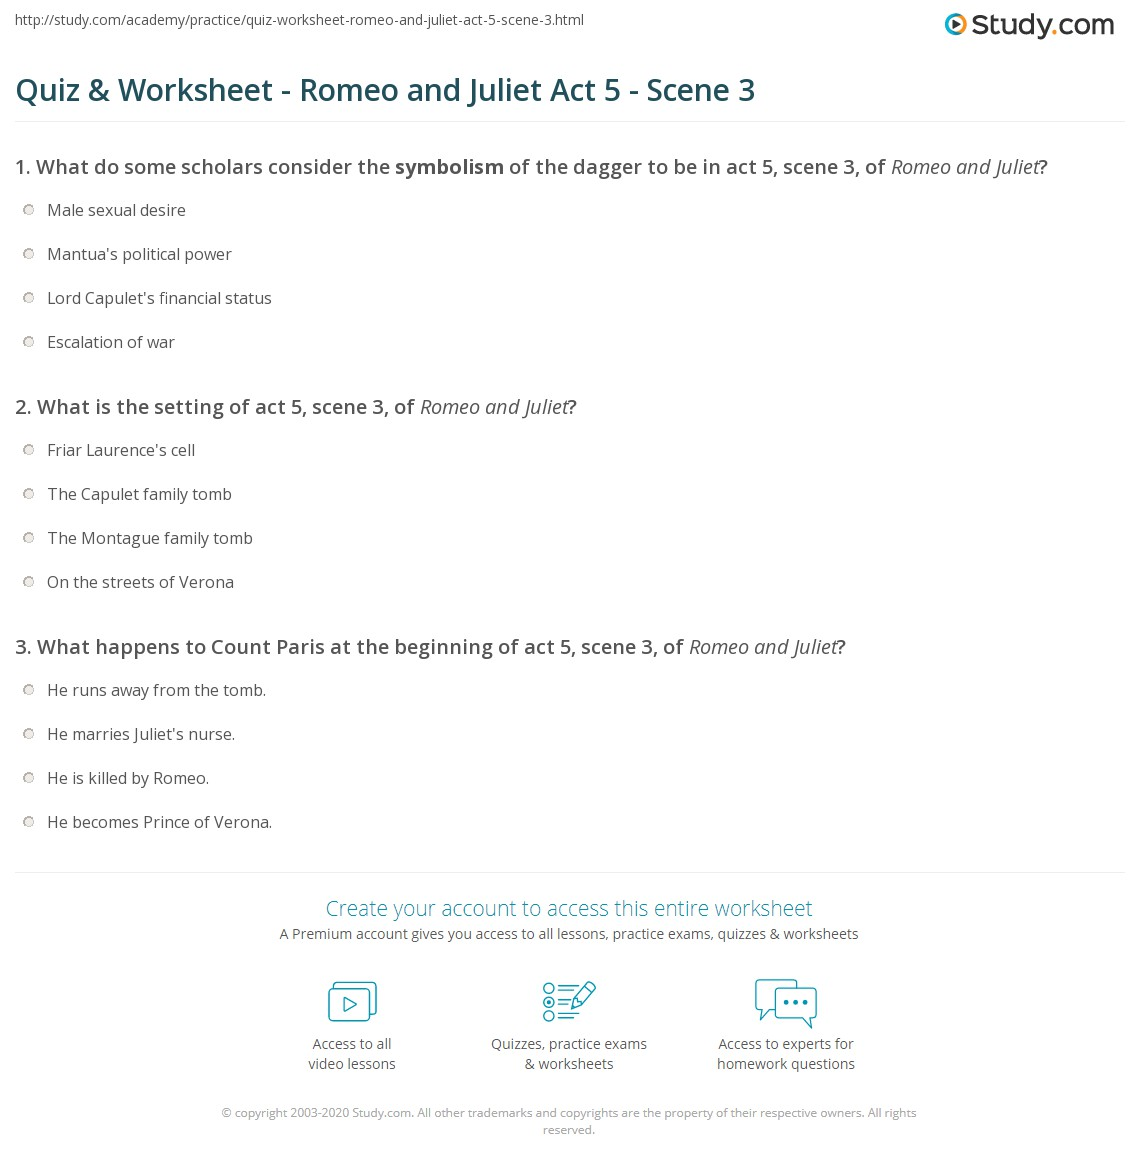 Quiz & Worksheet - Romeo and Juliet Act 5 - Scene 3 | Study.com